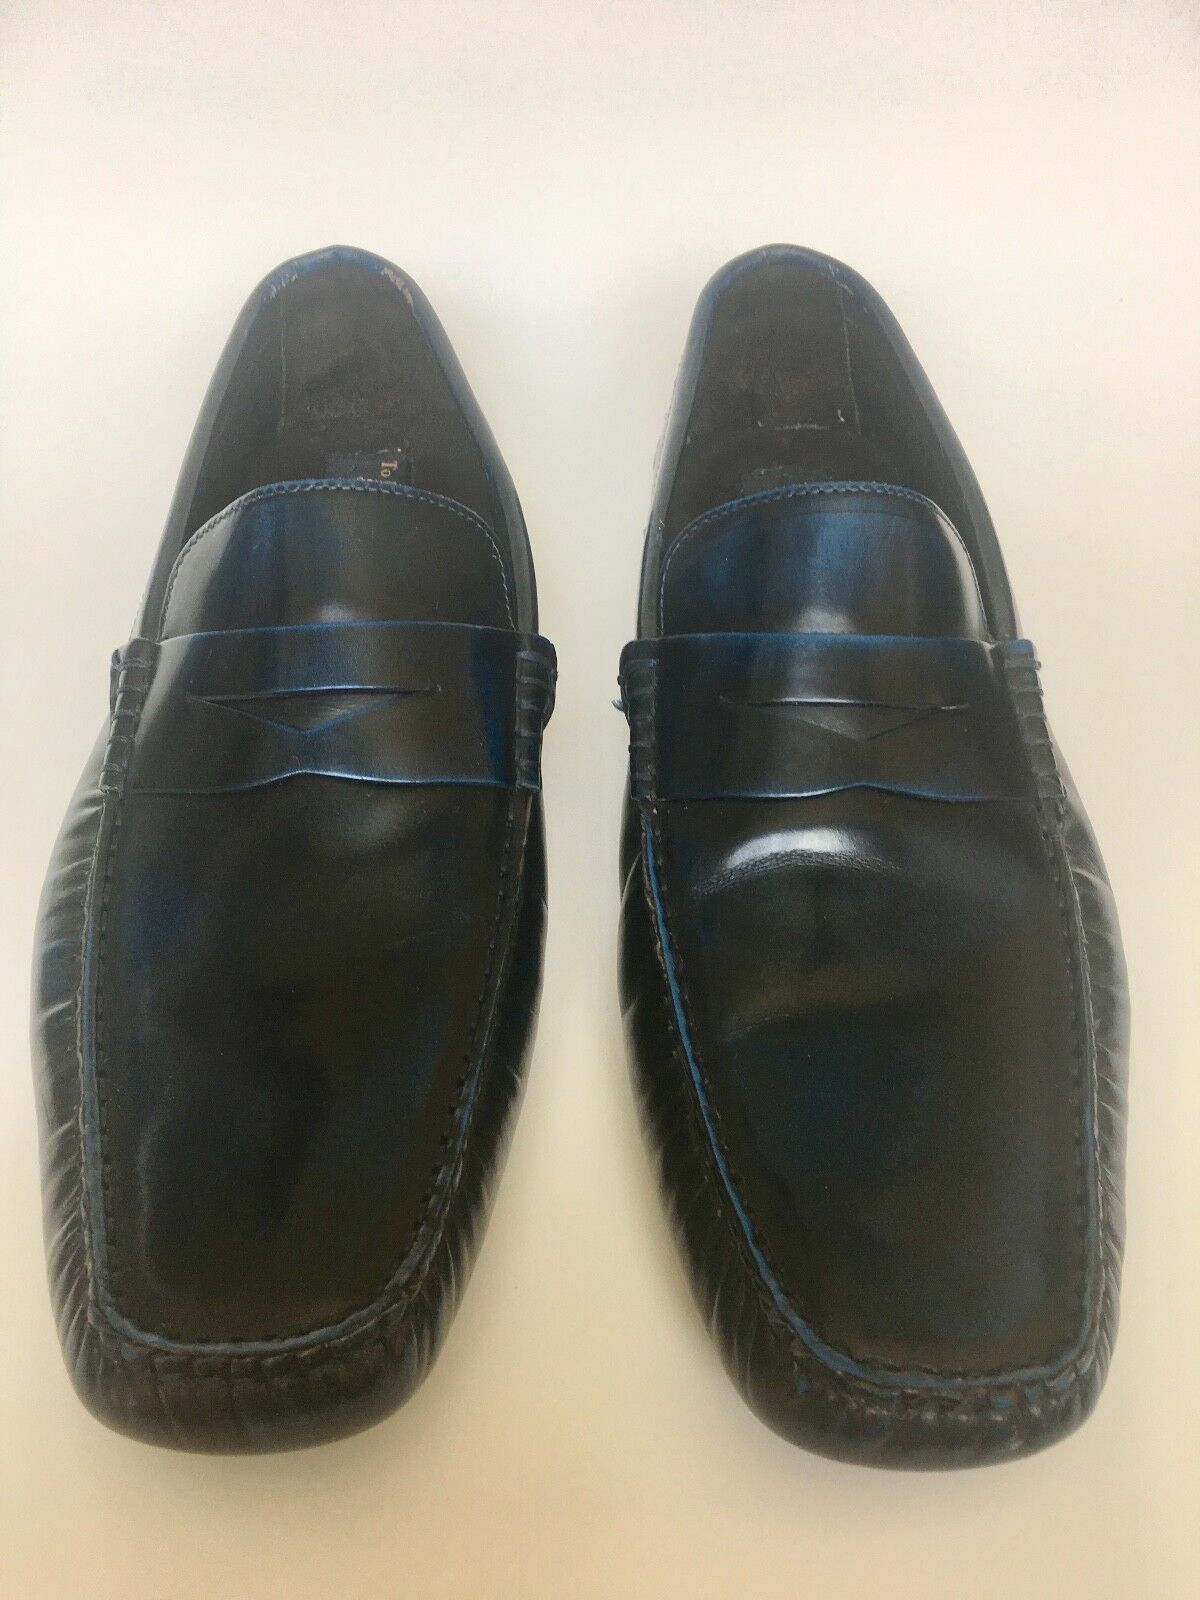 527ef78557bf TO BOOT New York Drivers Driving Shoes 10.5 D D D BLUE Slip-Ons Loafers  4297ea